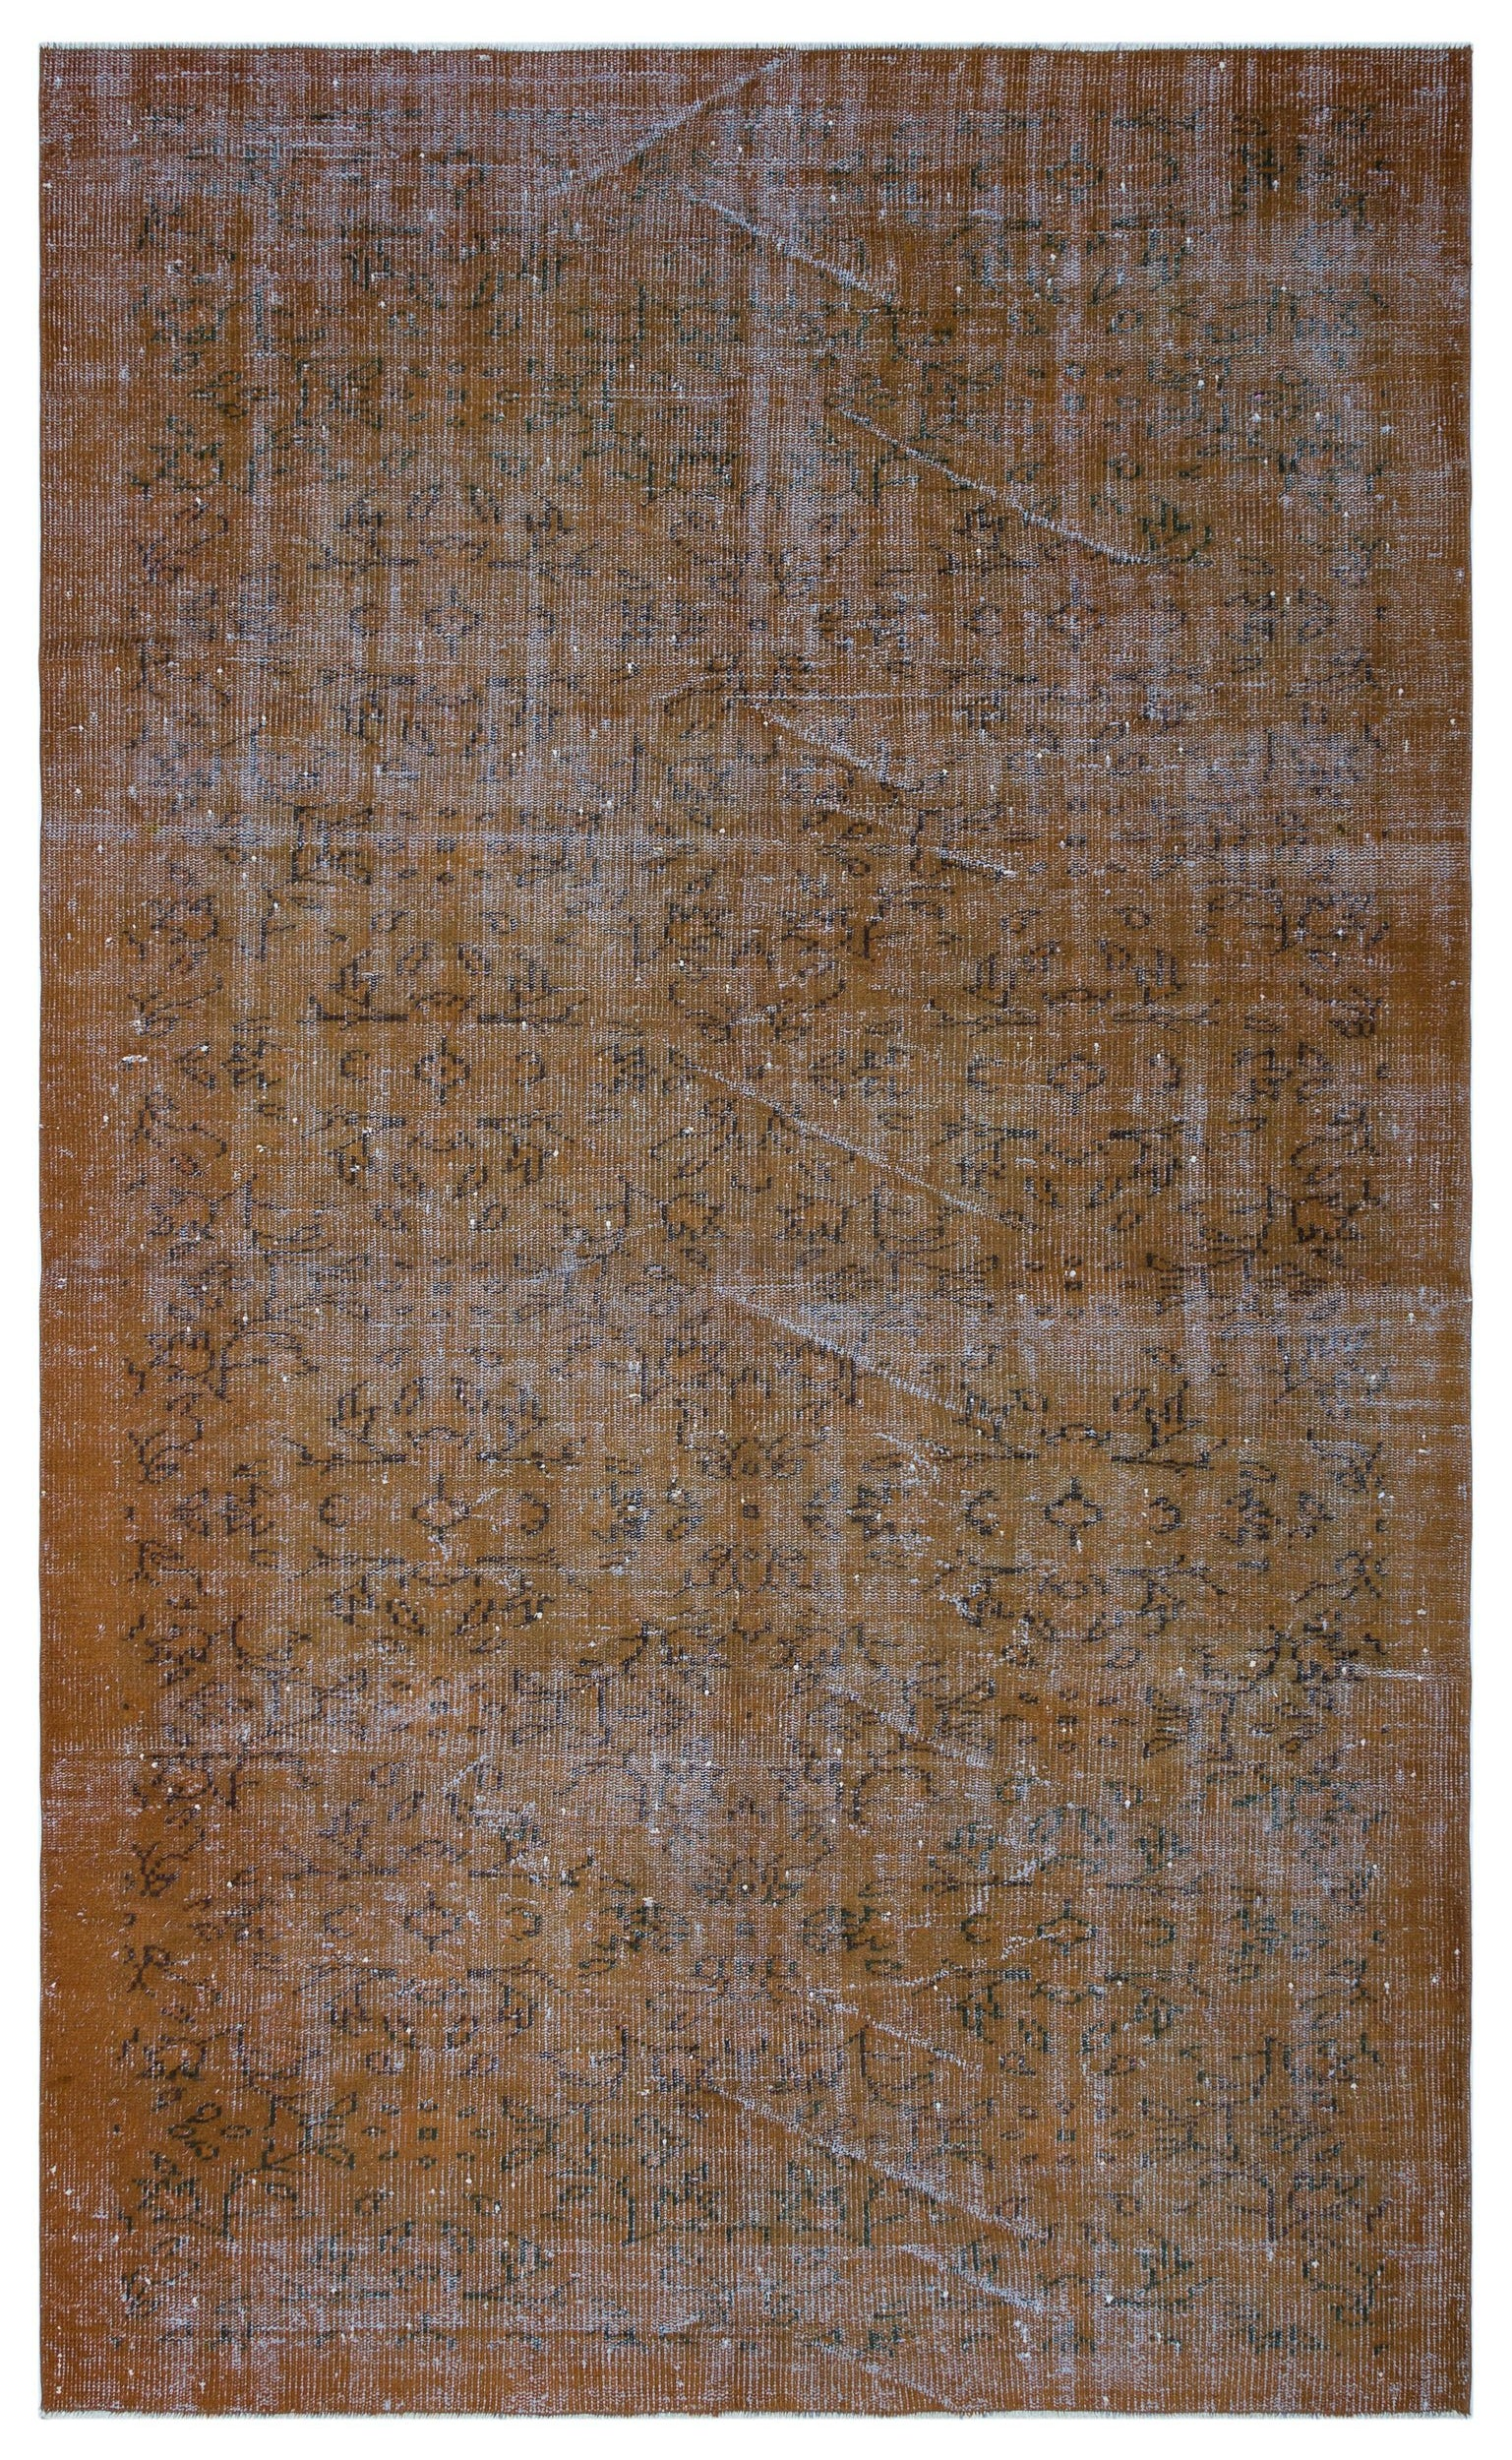 Brown Over Dyed Vintage Rug 5'10'' x 9'9'' ft 178 x 296 cm